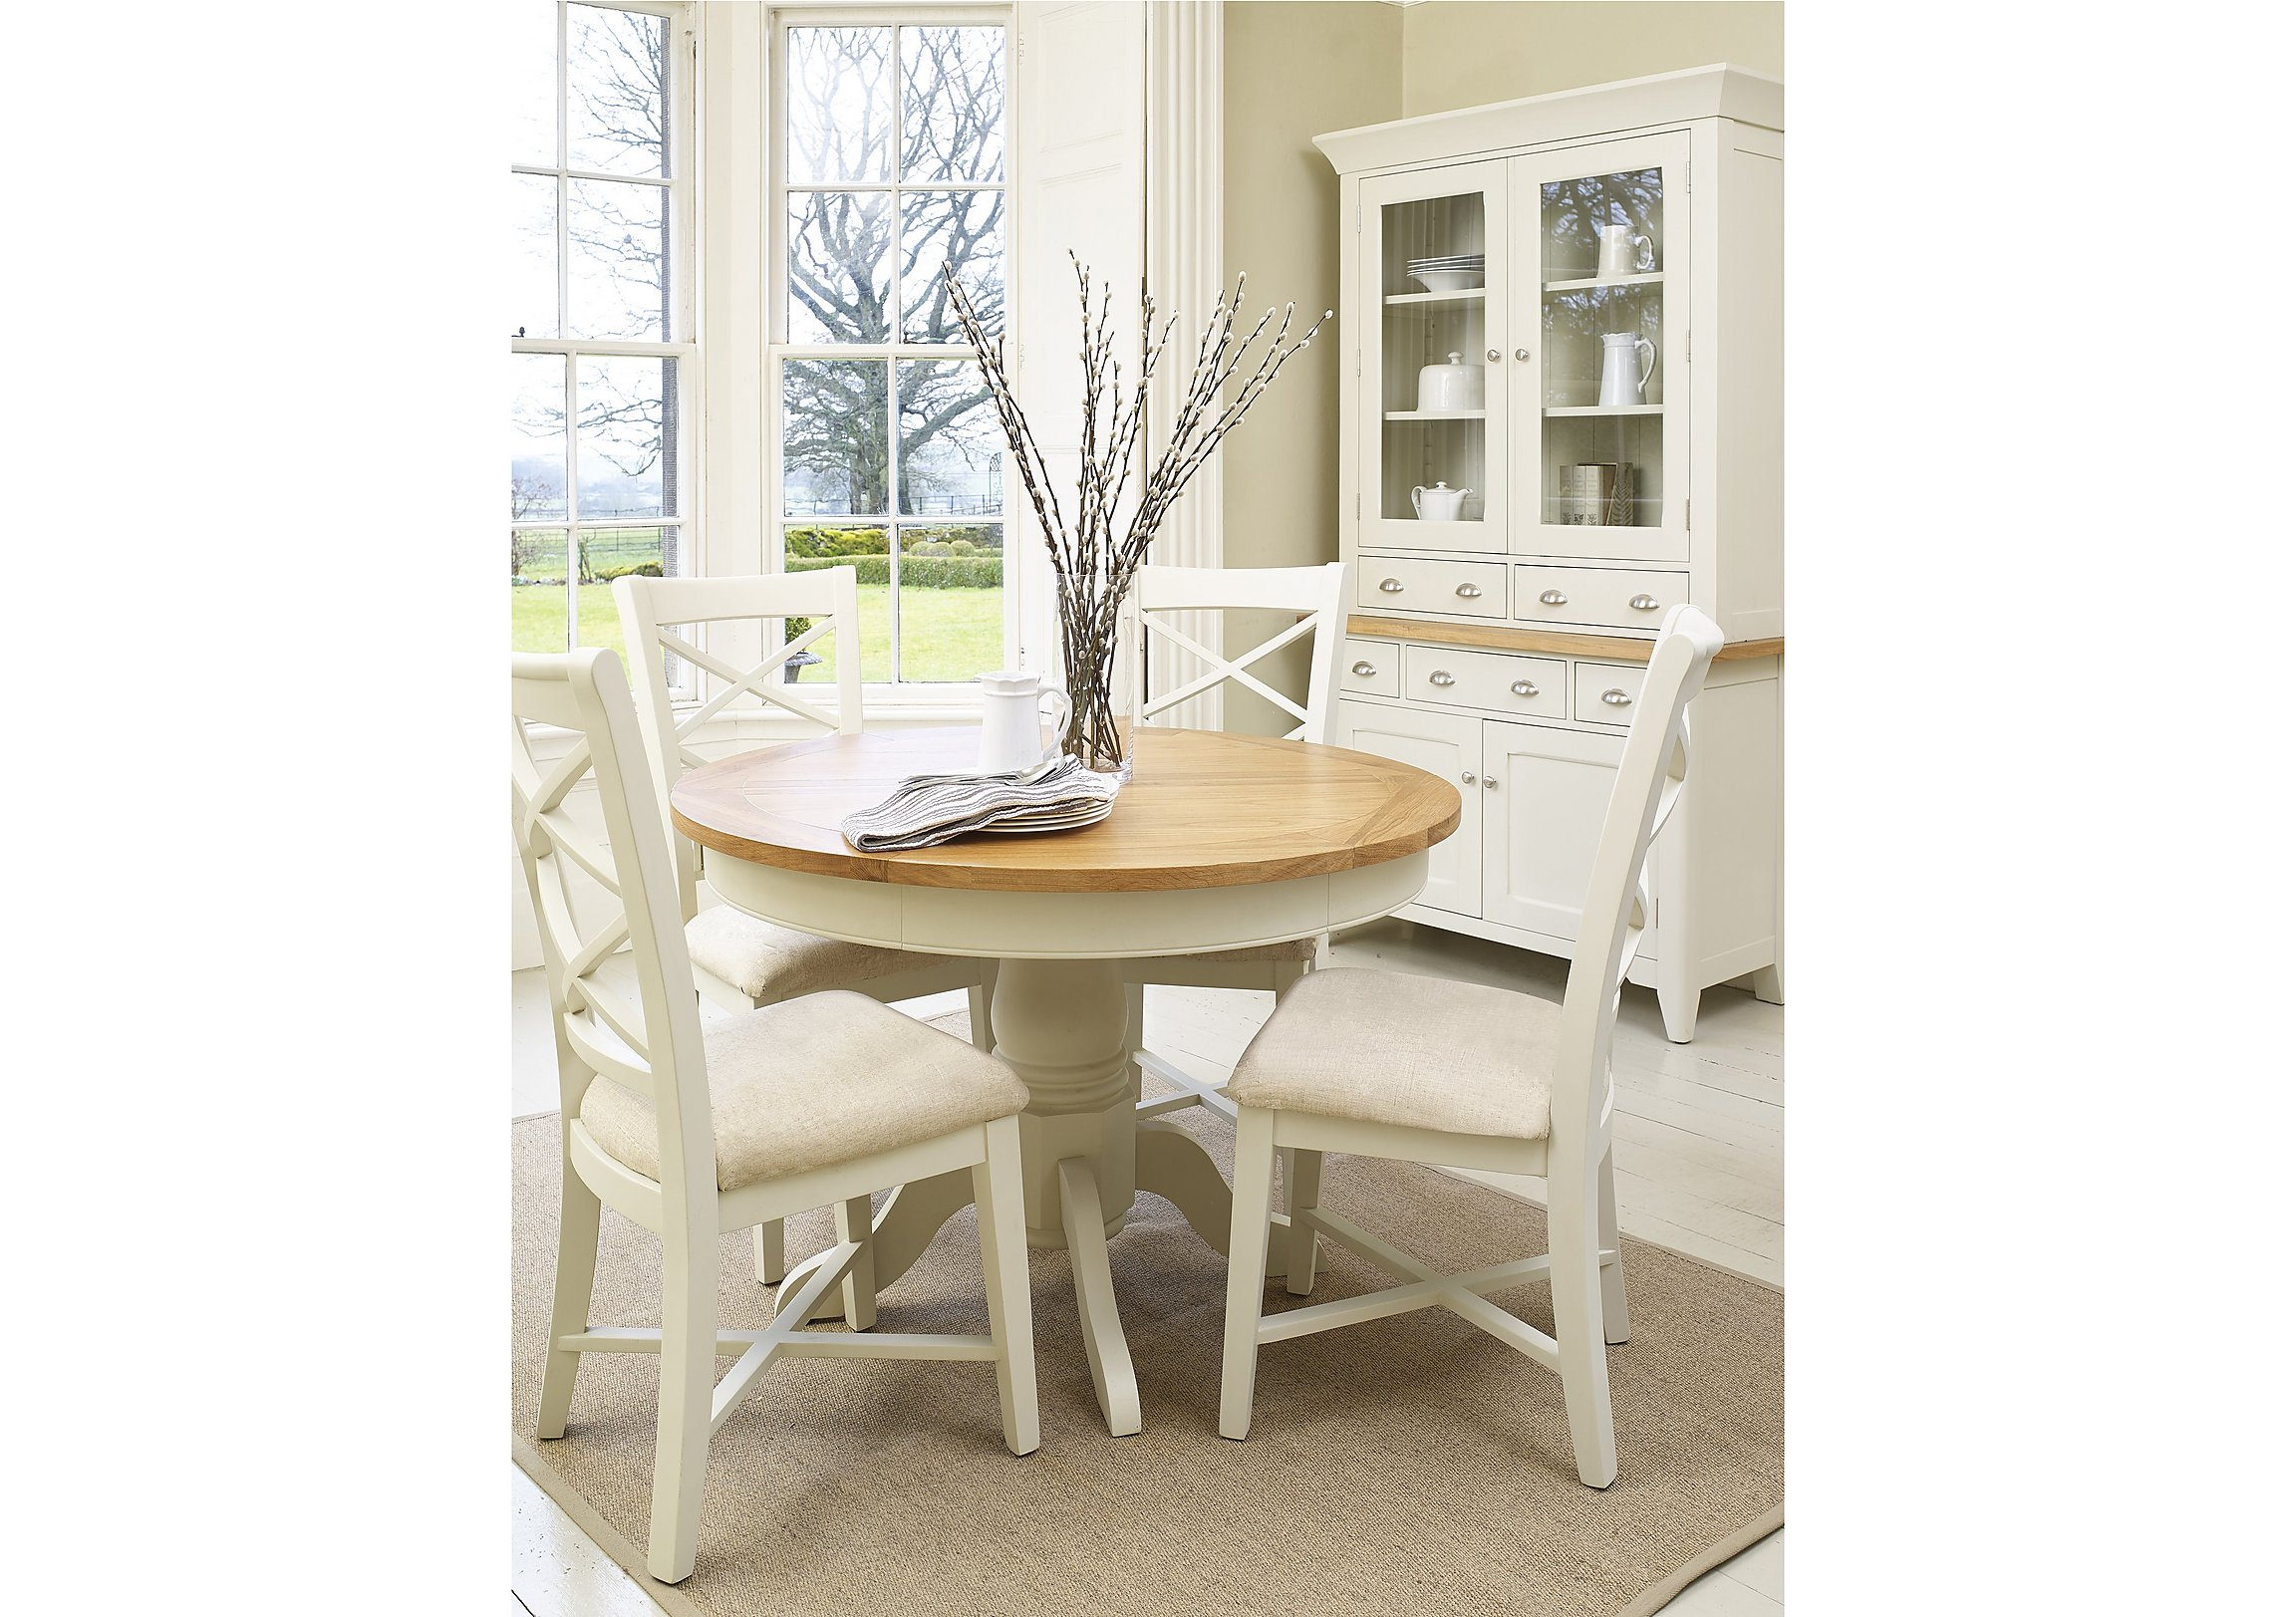 Arles Round Extending Dining Table with 4 Chairs - Furniture Village